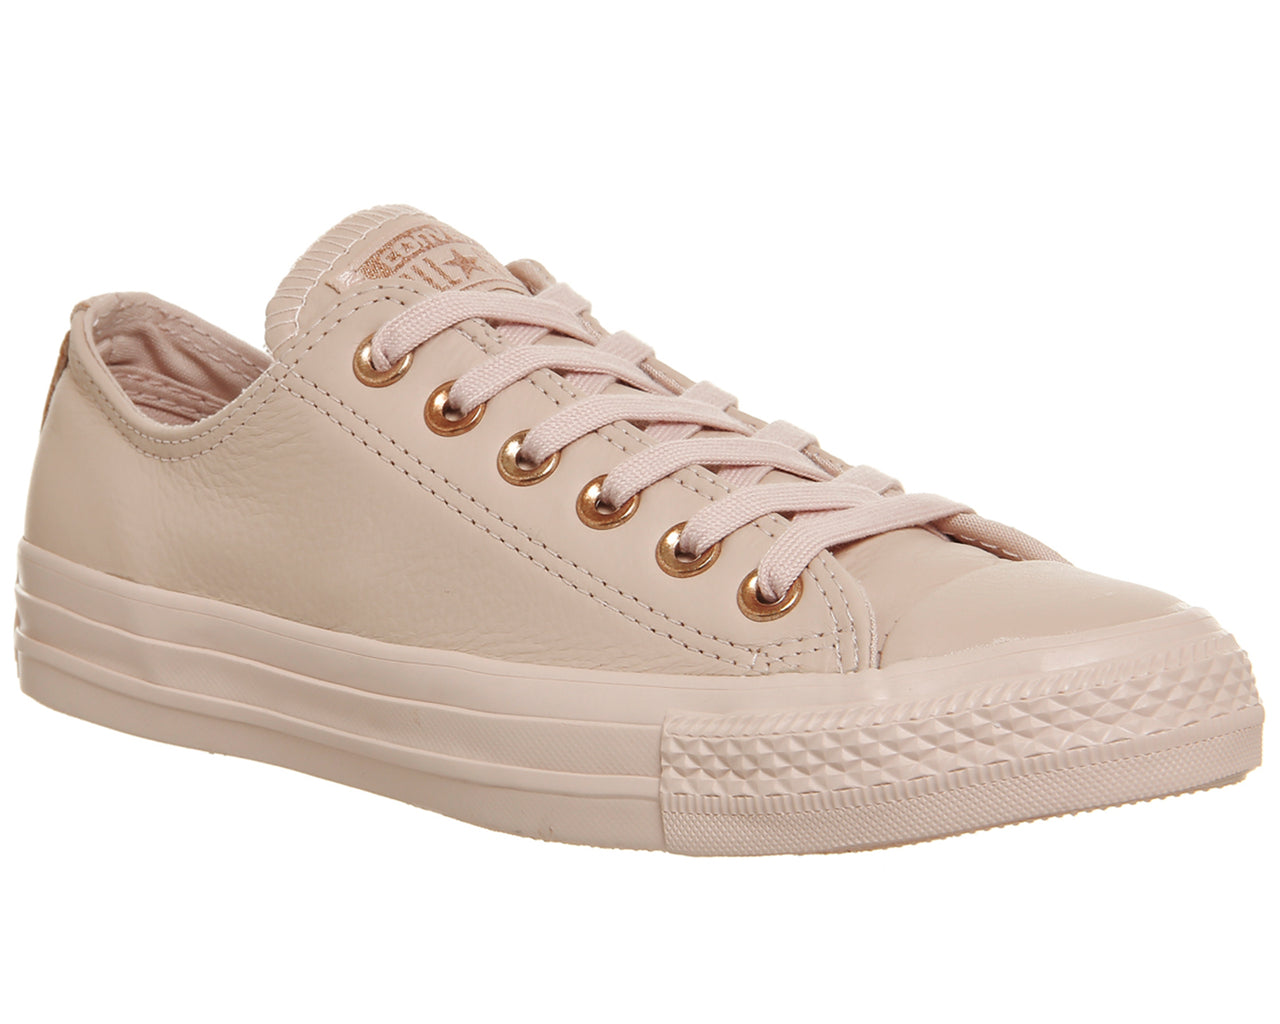 d251faca6b79 Womens Converse All Star Low Leather Dusk Pink Rose Gold – OFFCUTS SHOES by  OFFICE